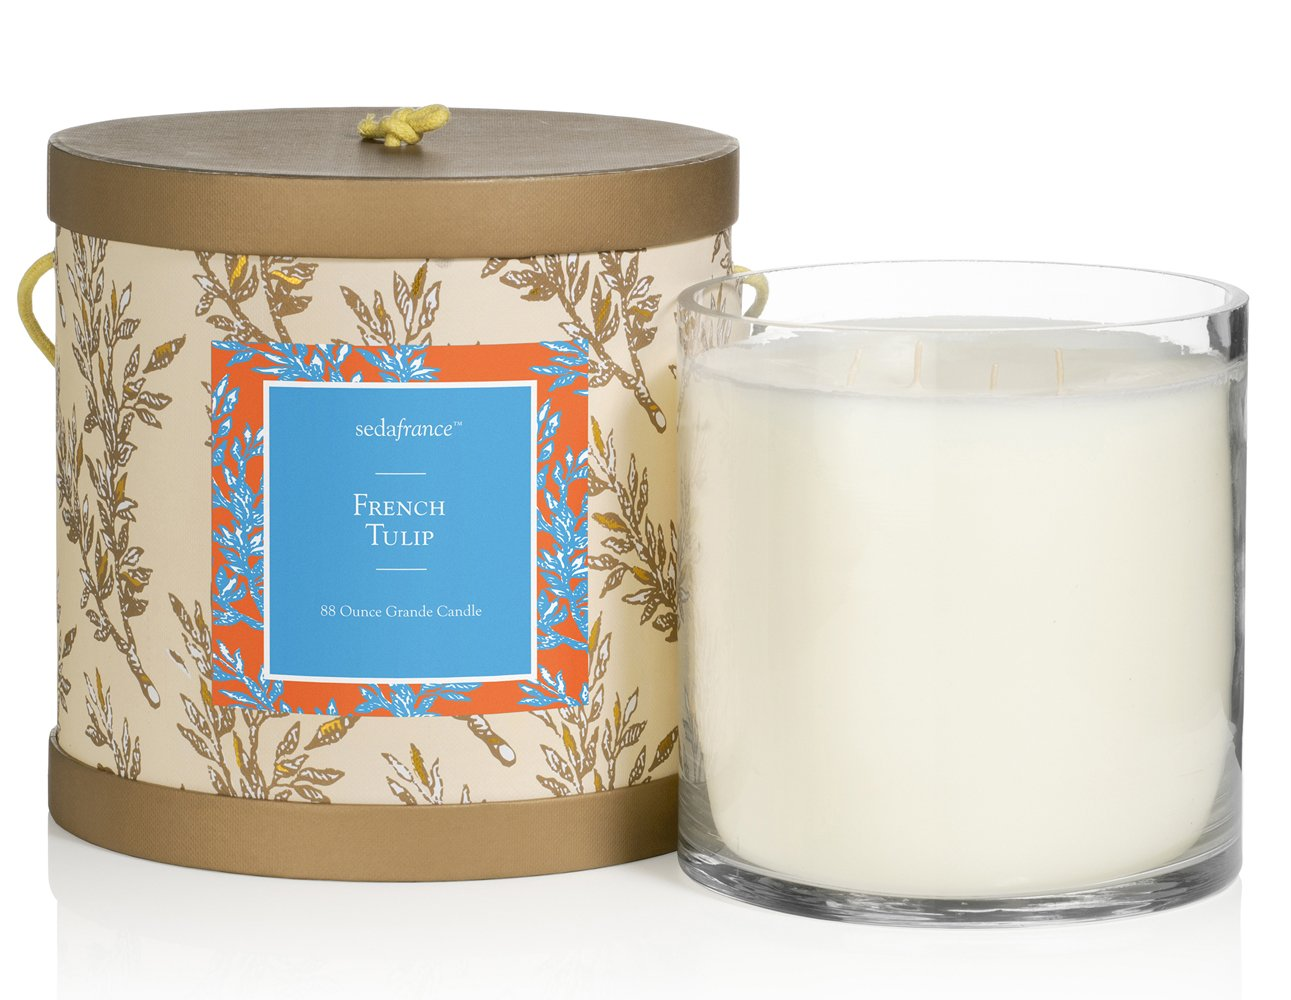 Seda France Classic Toile Candle, French Tulip, 88 Ounce